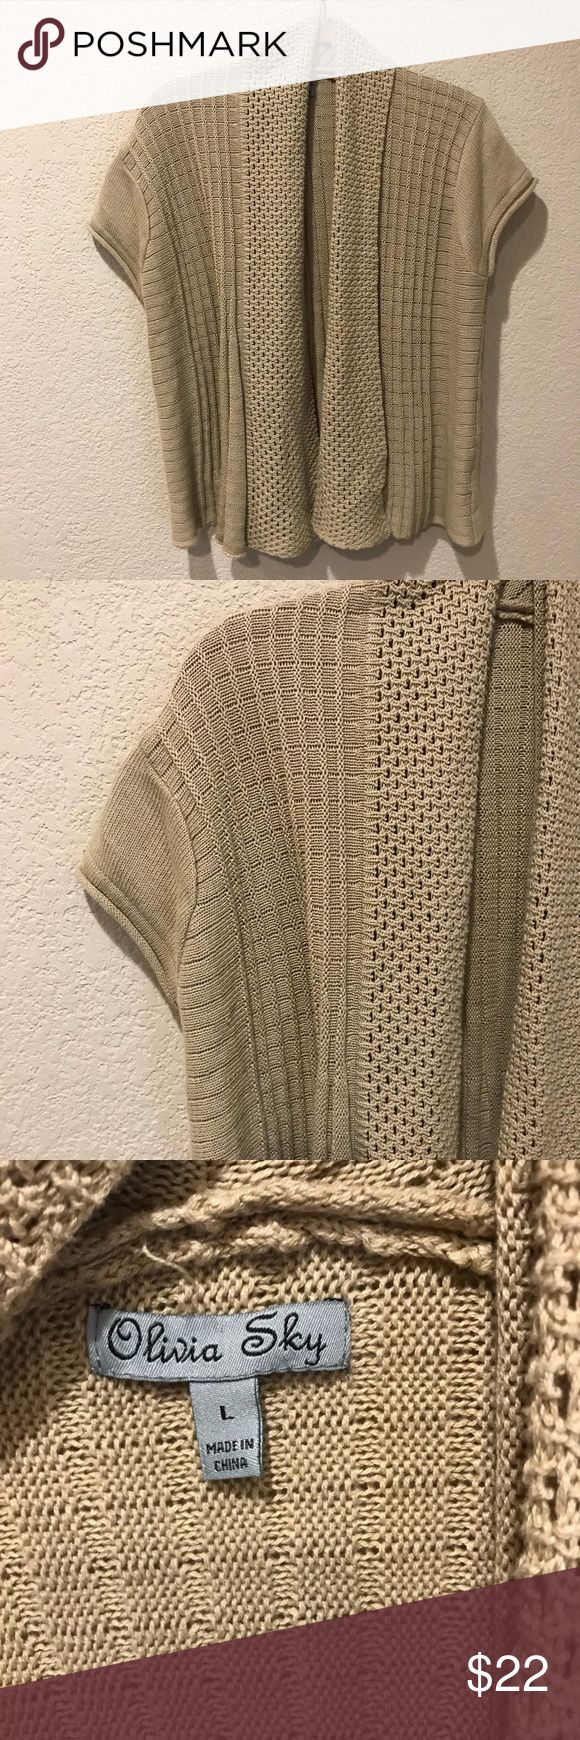 Tan Olivia Sky cardigan Good used condition!  Closet staple.  Add to a bundle and I will send you an offer Olivia Sky Sweaters Cardigans